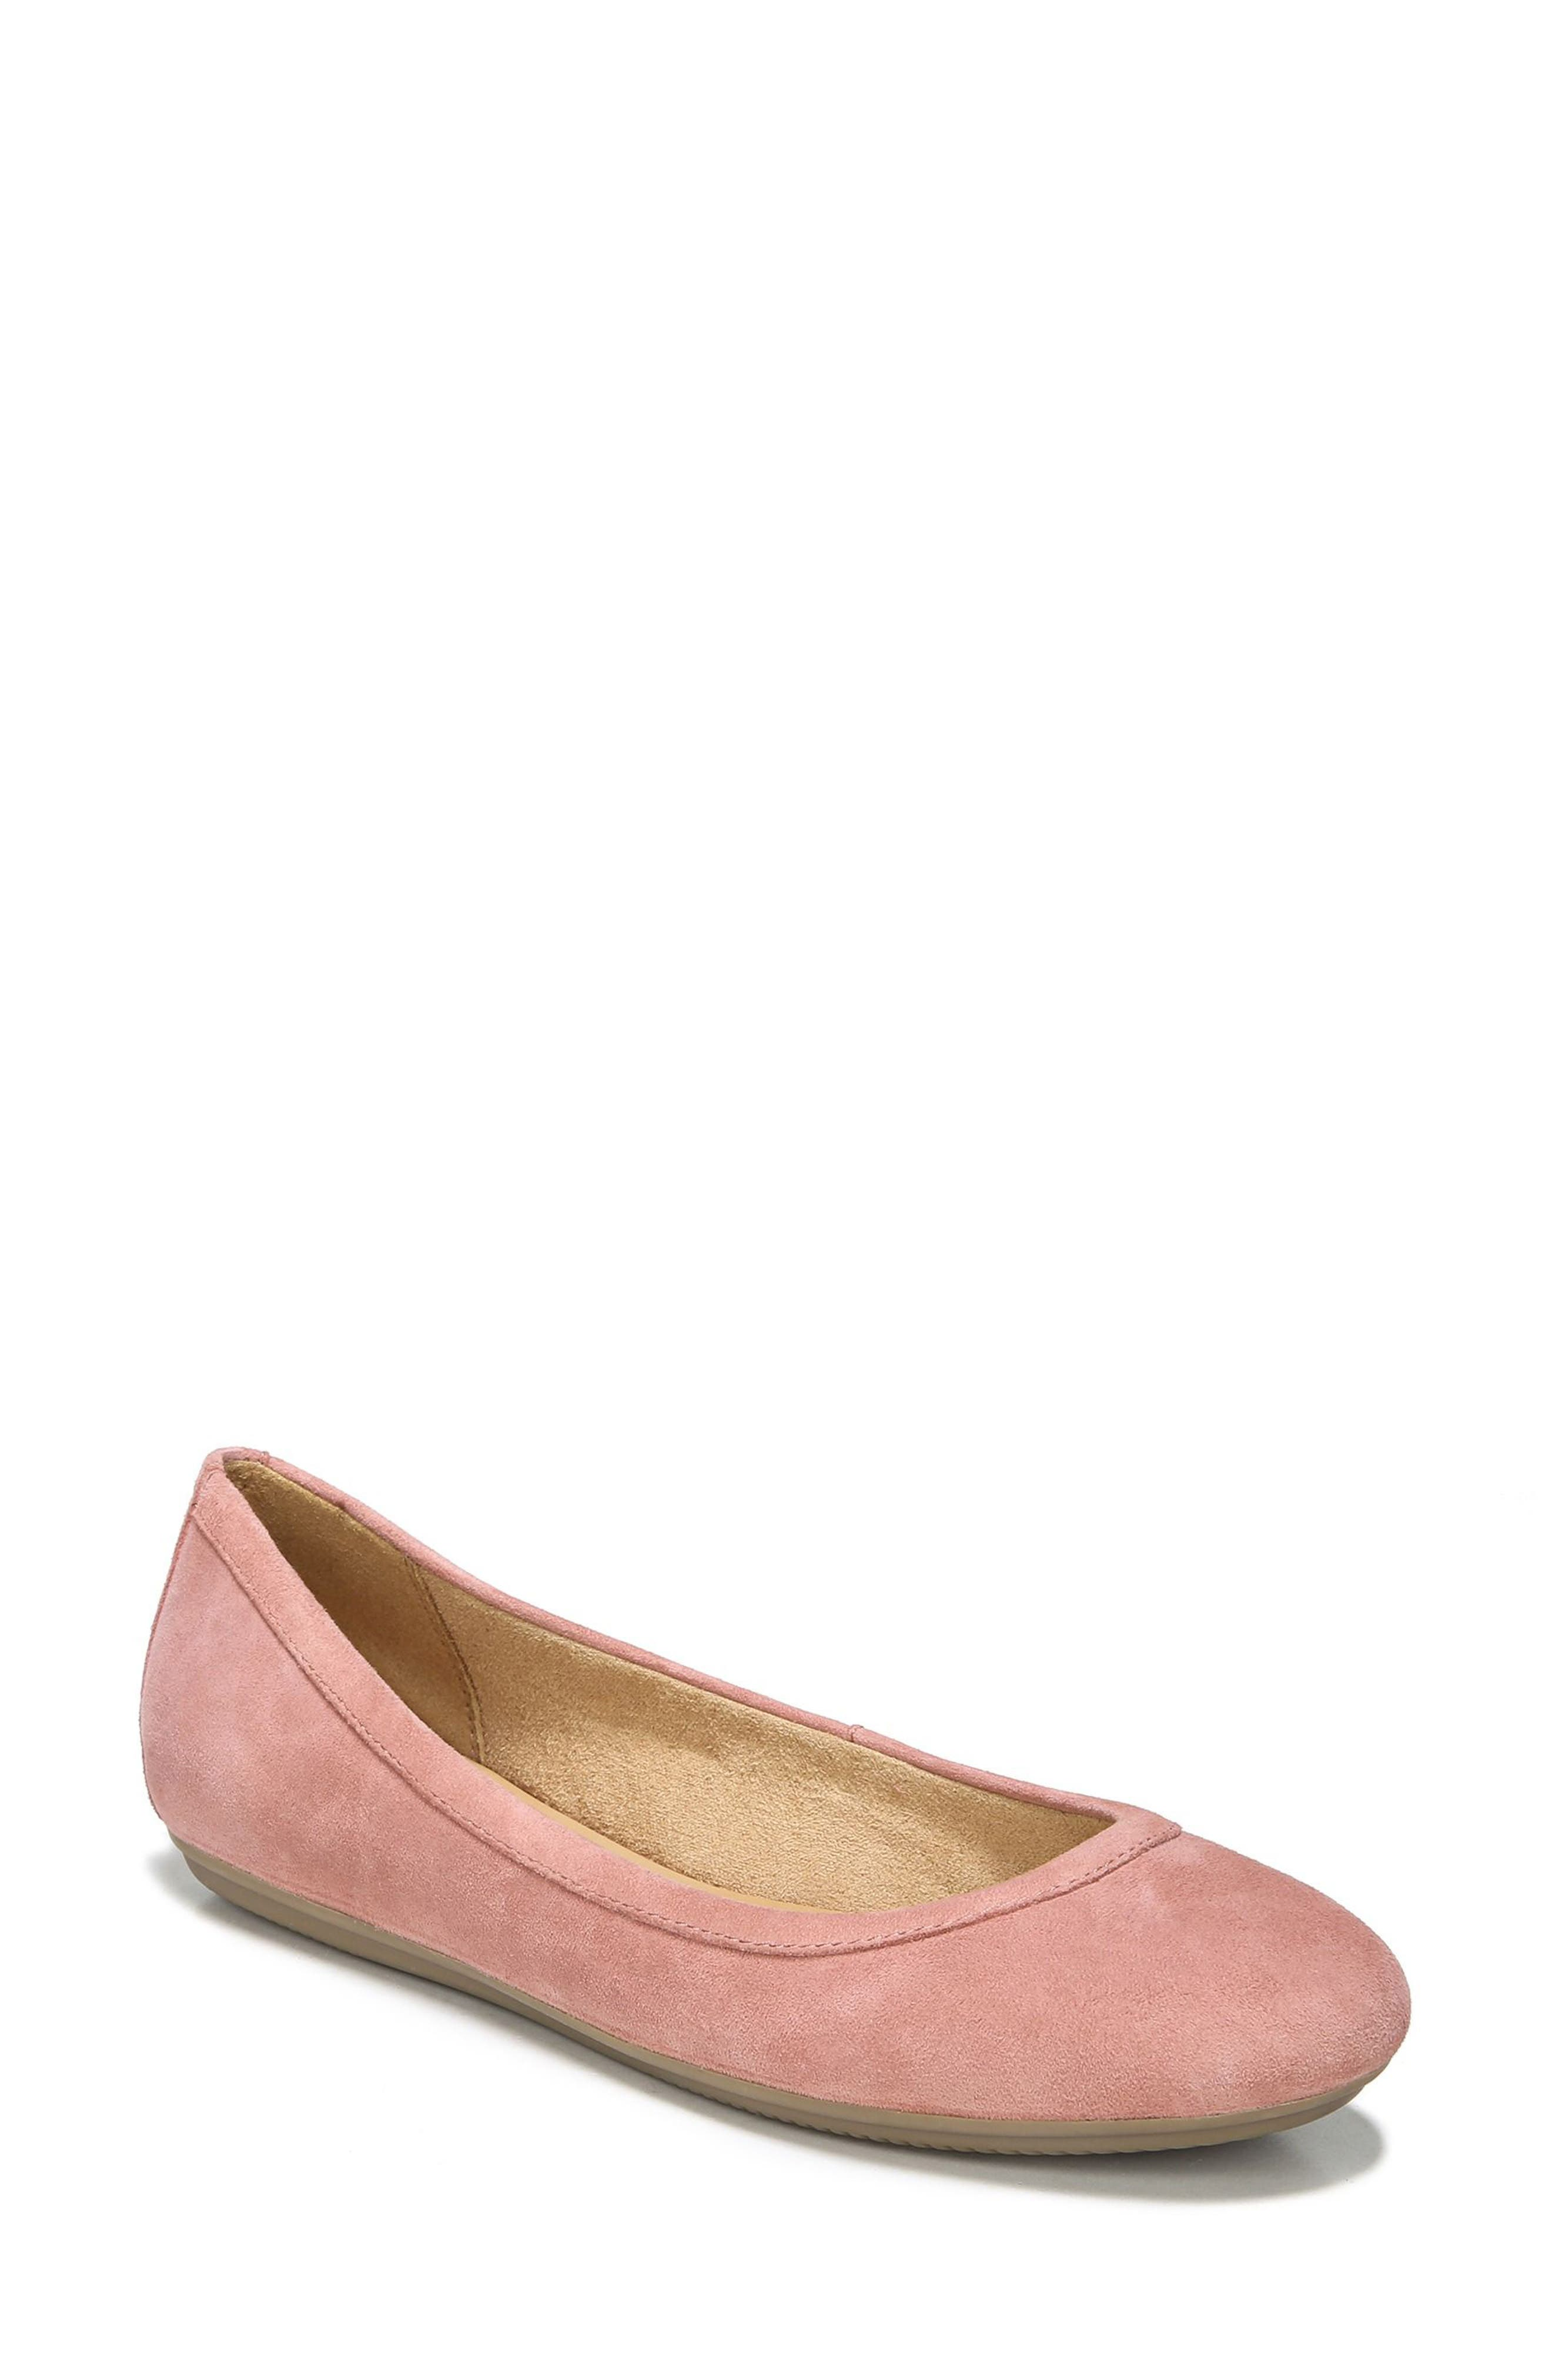 Brittany Ballet Flat,                         Main,                         color, Peony Pink Suede